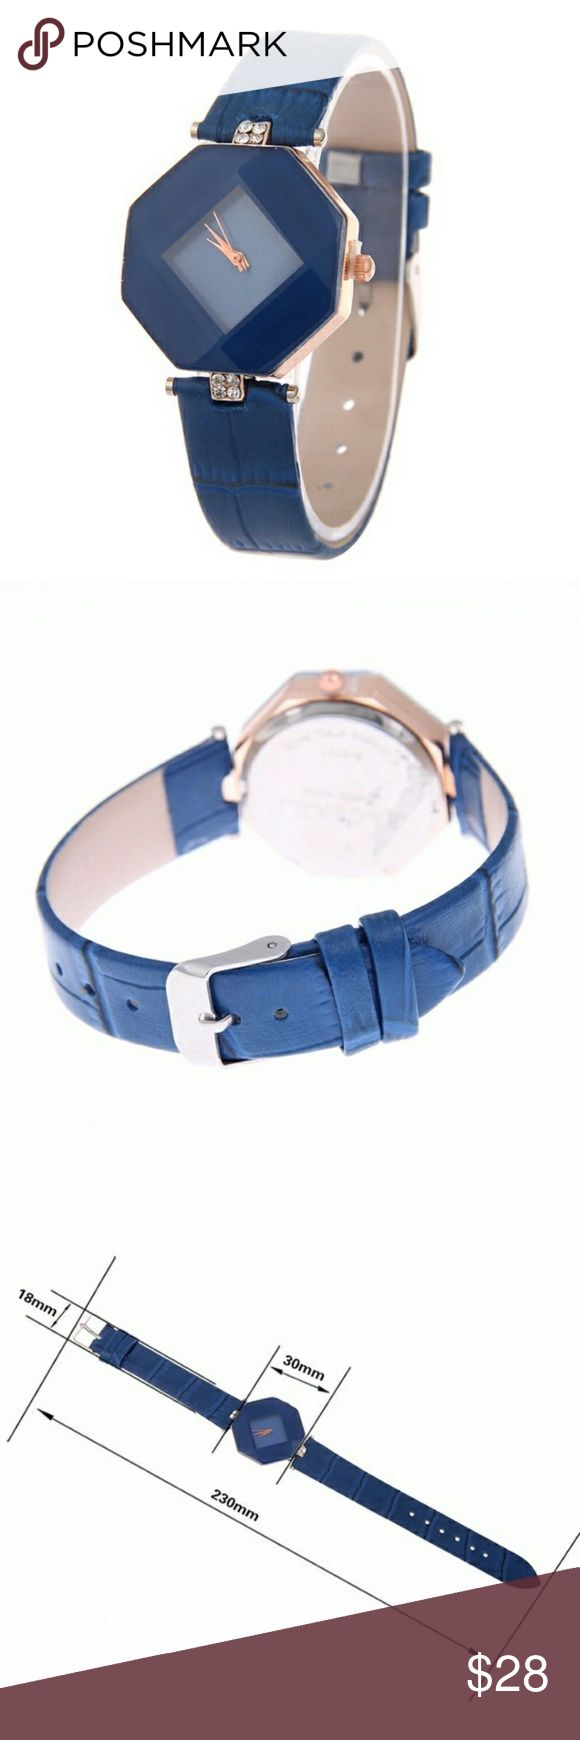 Geometric watch with faux leather band navy This watch has a unique geometric face and a faux leather band, all in a rich navy blue. The length of the watch is 23cm.  Brand new, never used,no brand name. Accessories Watches